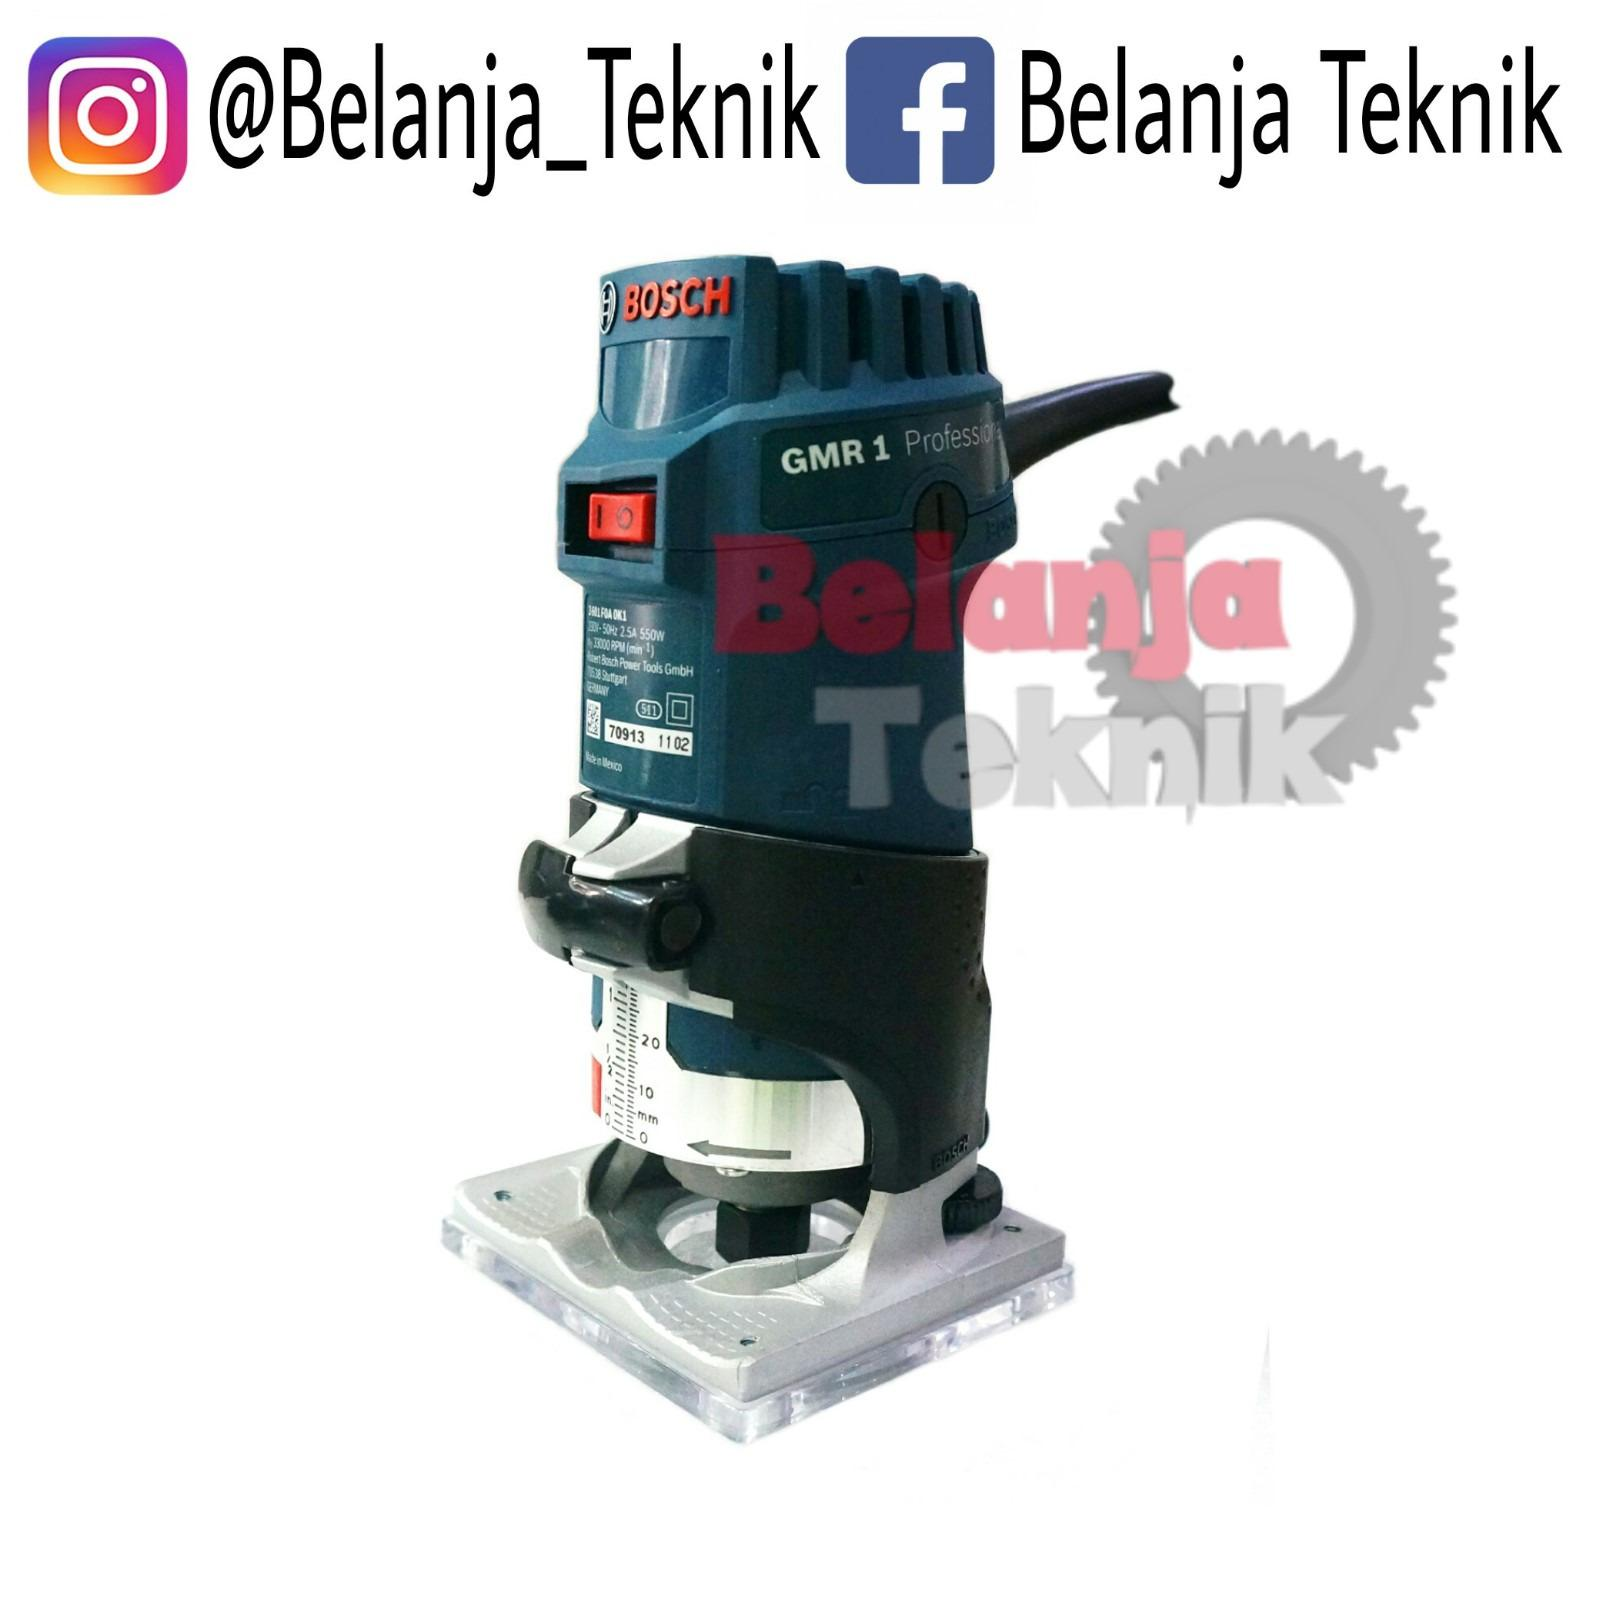 Bosch GMR 1 Wood Trimmer Mesin Profil Kayu